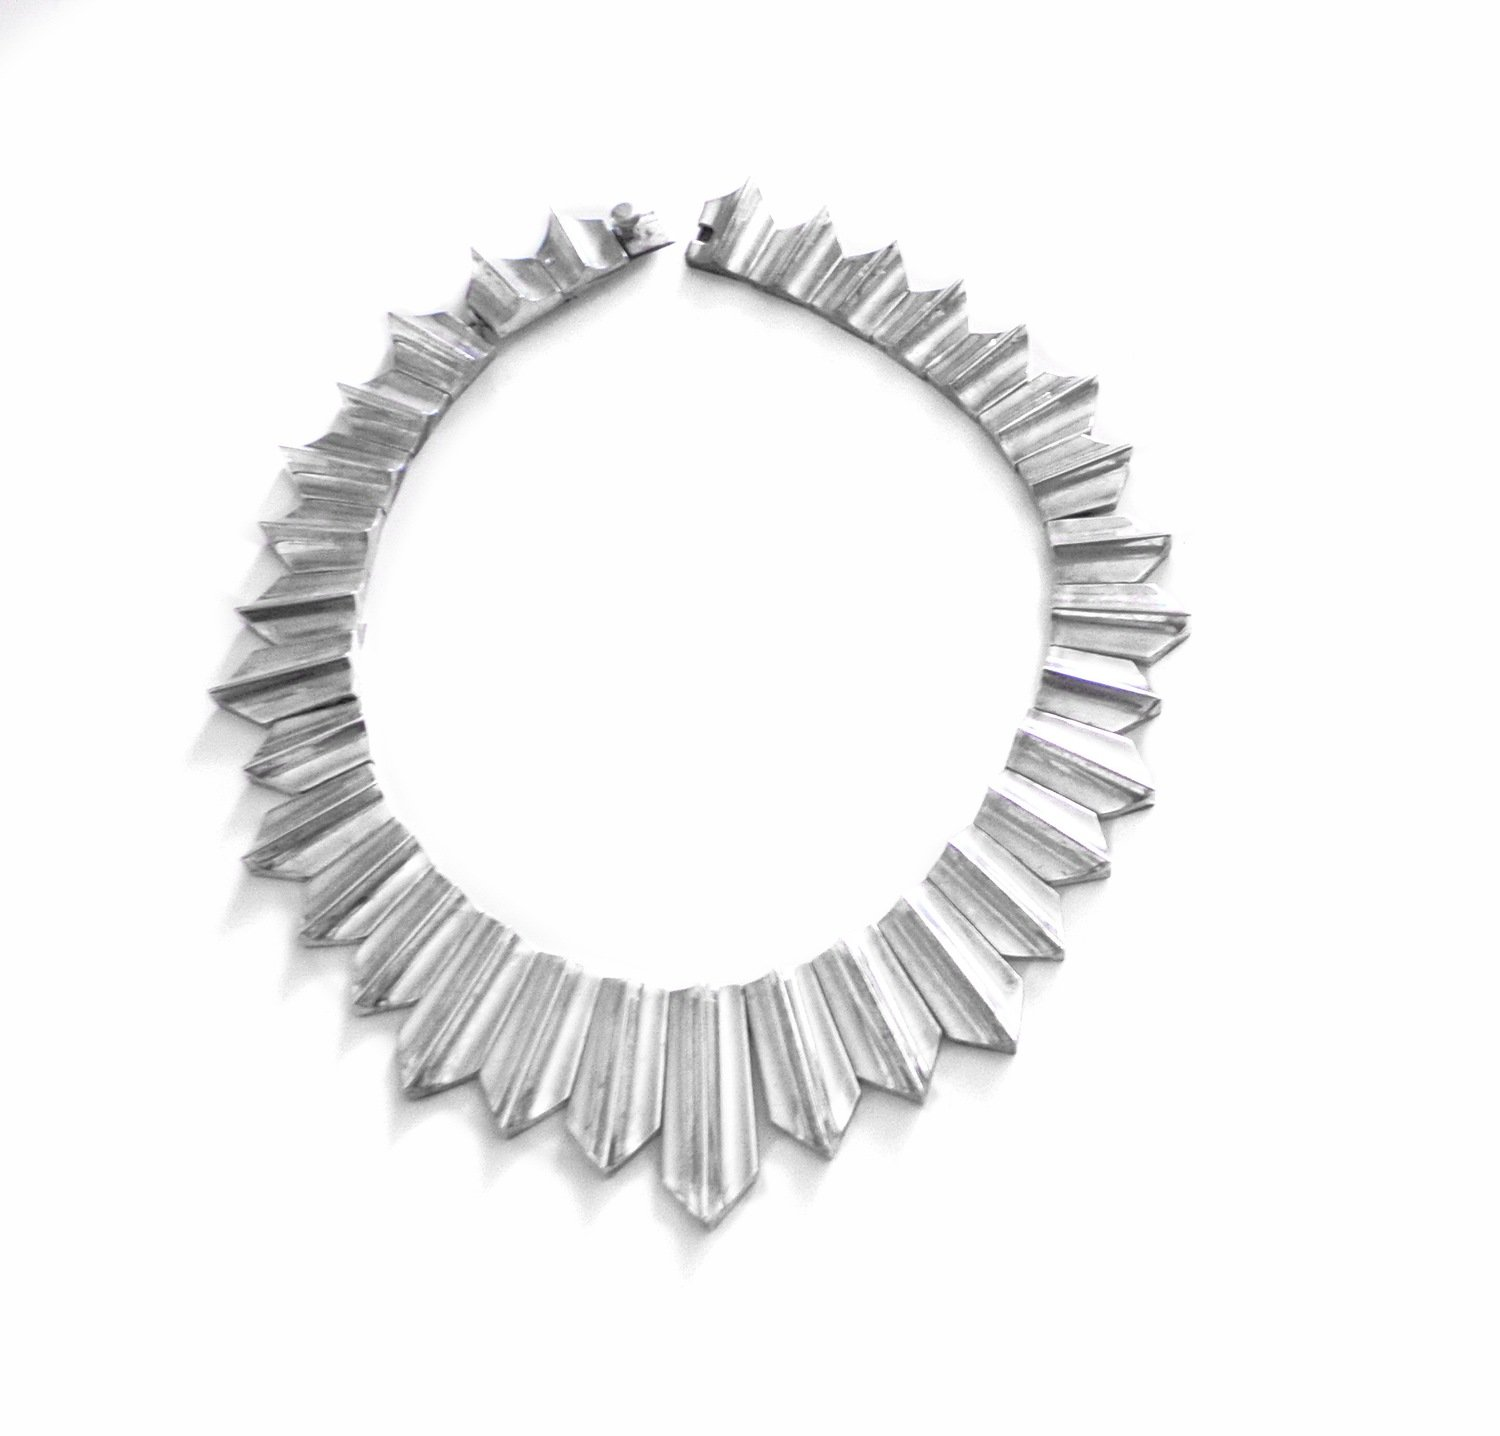 Antonio Pineda Zig Zag Necklace MCM Taxco Mexican 970 Silver